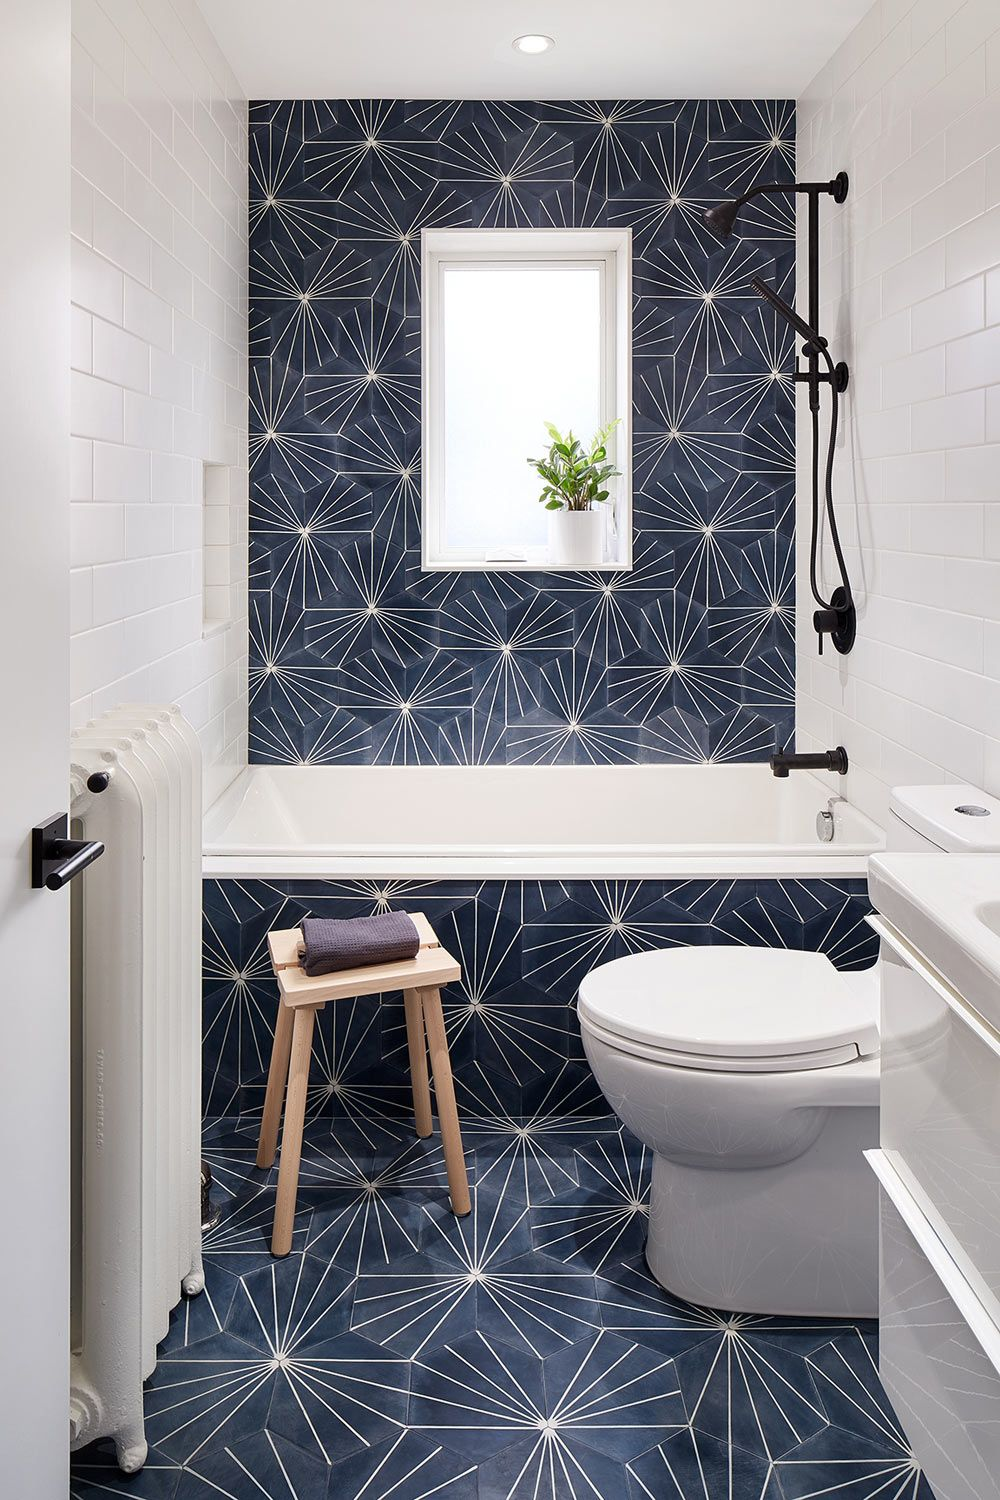 Aamp Studio Renovates And Adds Onto A 100 Year Old Townhouse In Toronto Design Milk In 2020 Bathroom Interior Design Bathroom Interior Bathroom Design